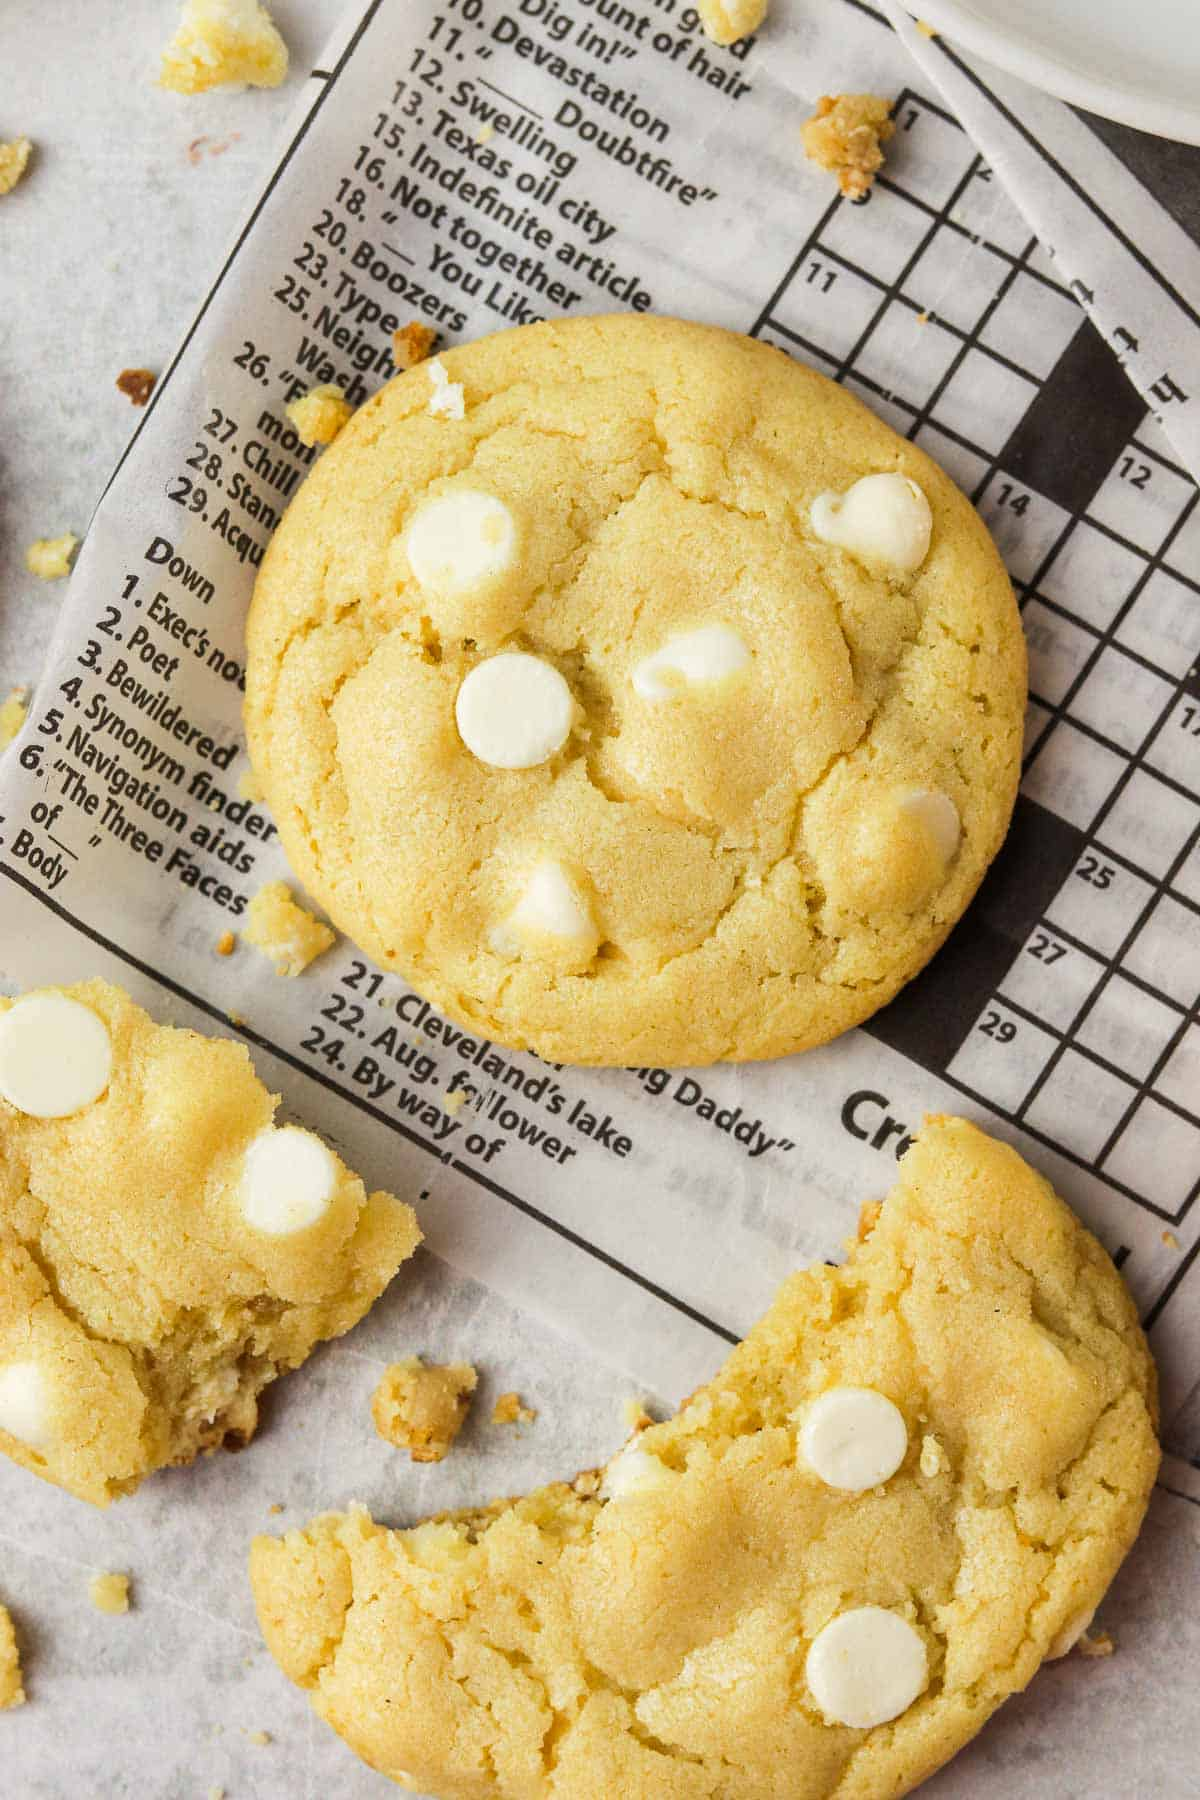 Double white chocolate chip cookie on newspaper.